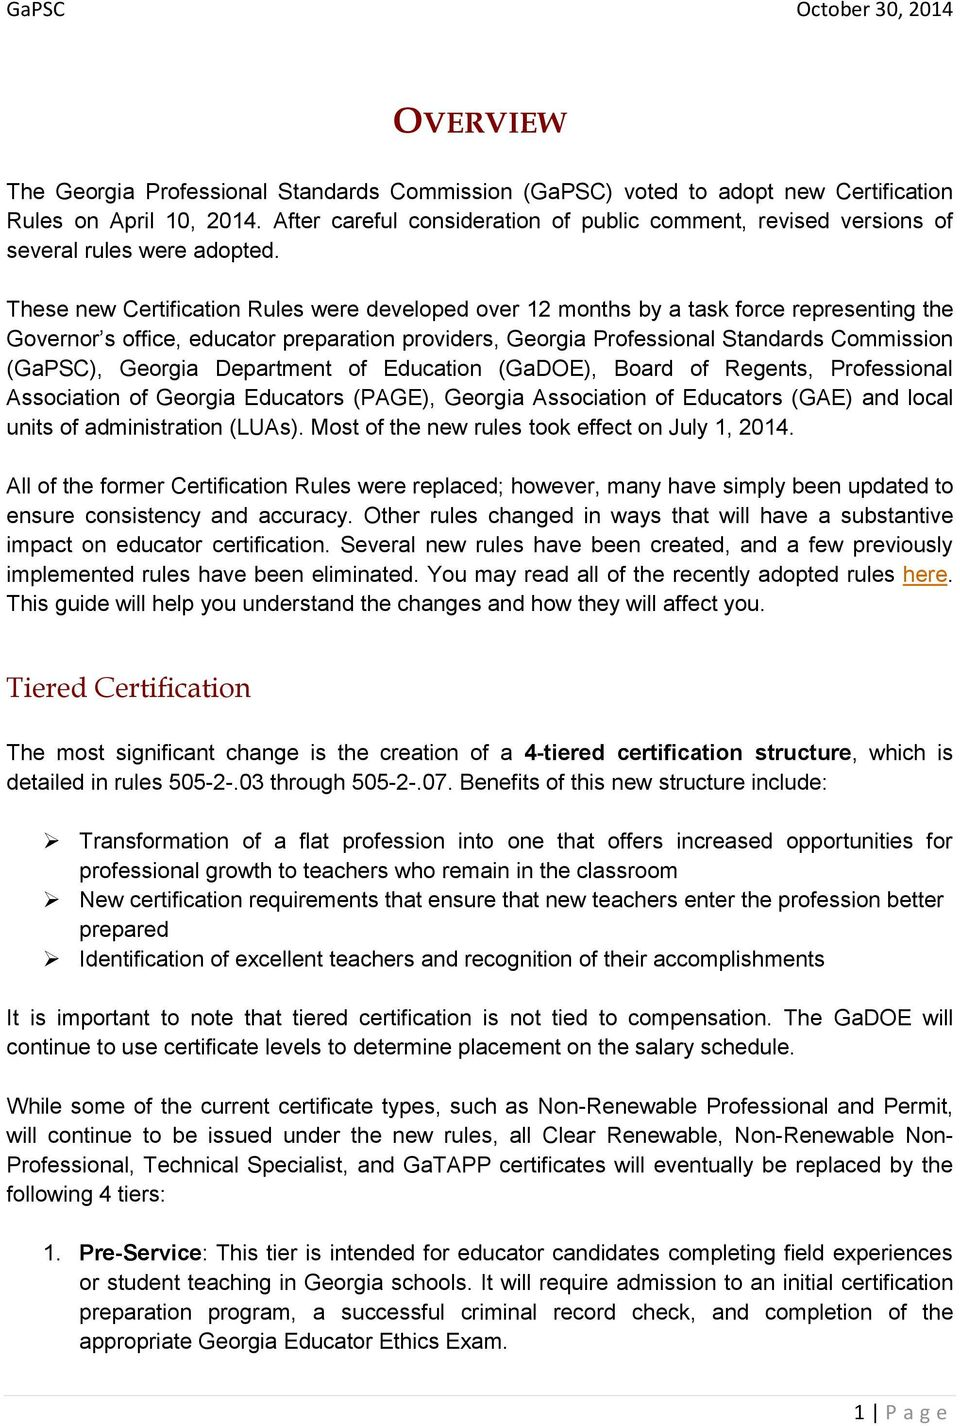 Gapsc October 30 2014 Contents Overview Tiered Certification 1